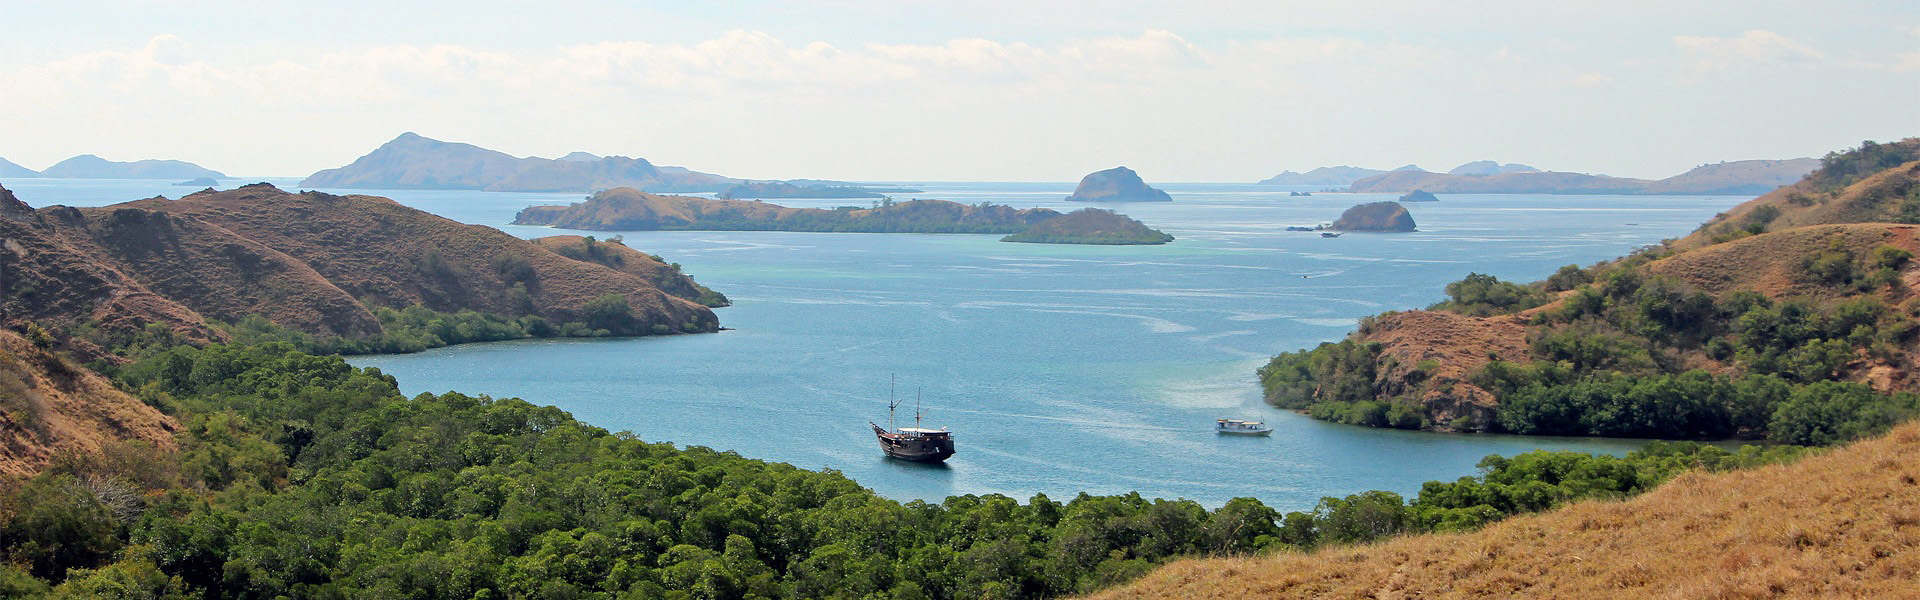 View over the Lesser Sunda Islands from Rinca Island, Komodo NP